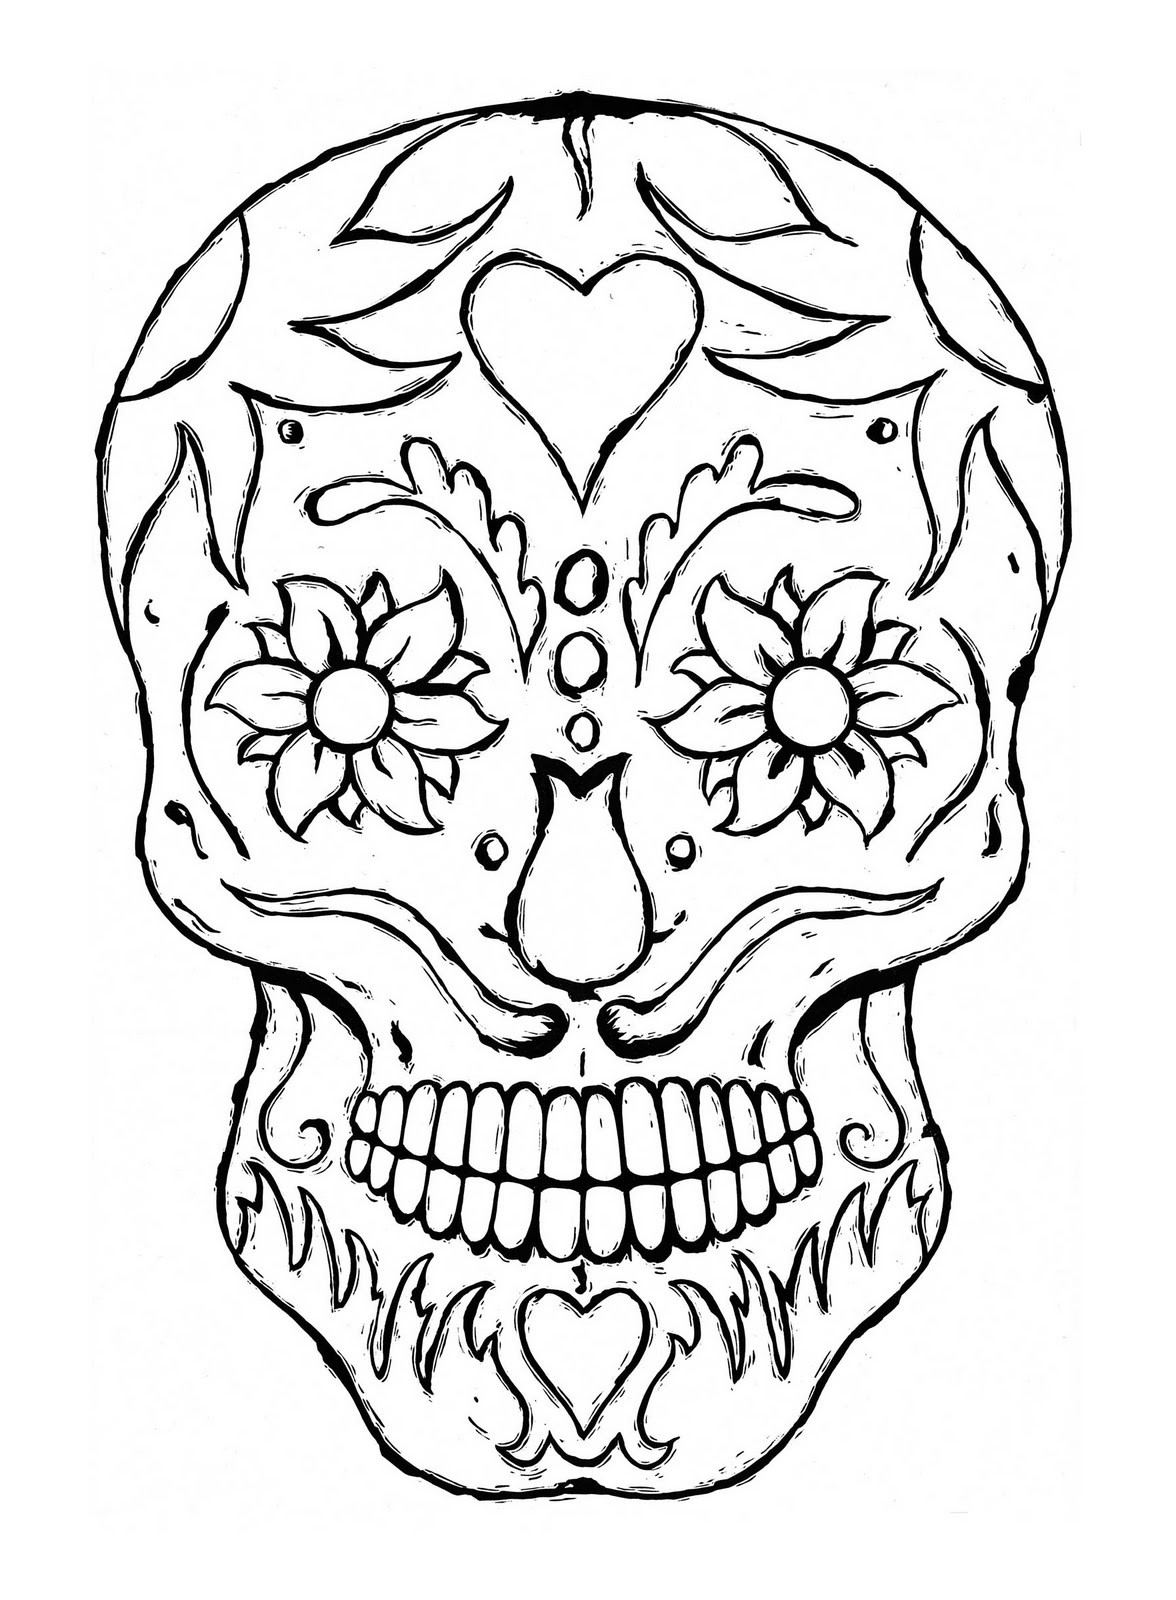 600x705 rey mysterio mask coloring pages 1176x1600 rey mysterio mask drawing skull gas mask high definition wallpaper